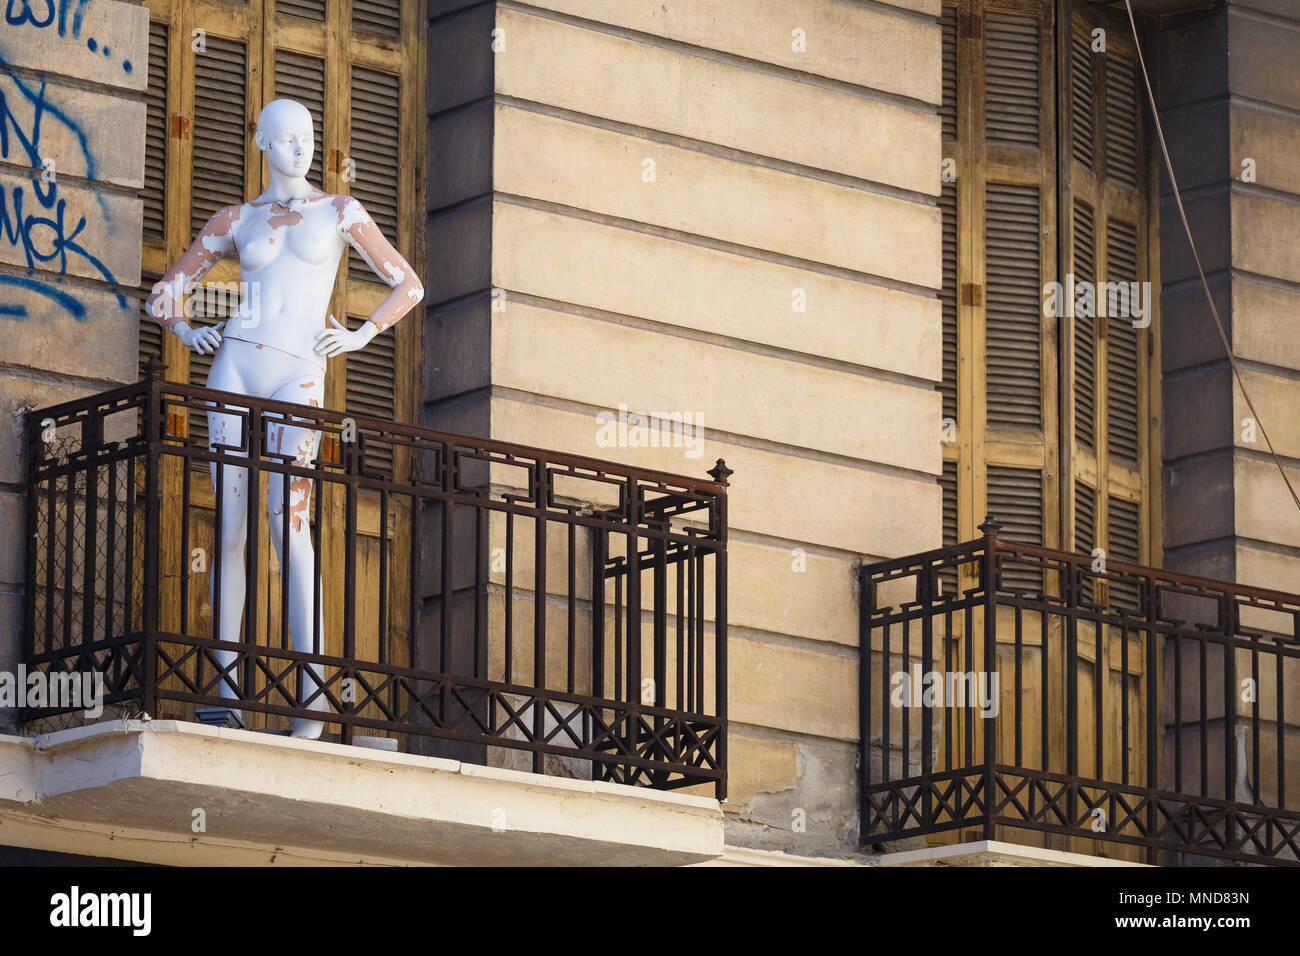 Athens, Greece - May 14, 2018: Disused mannequin on a balcony of an abandoned neoclassical building in the historical centre of Athens city. - Stock Image